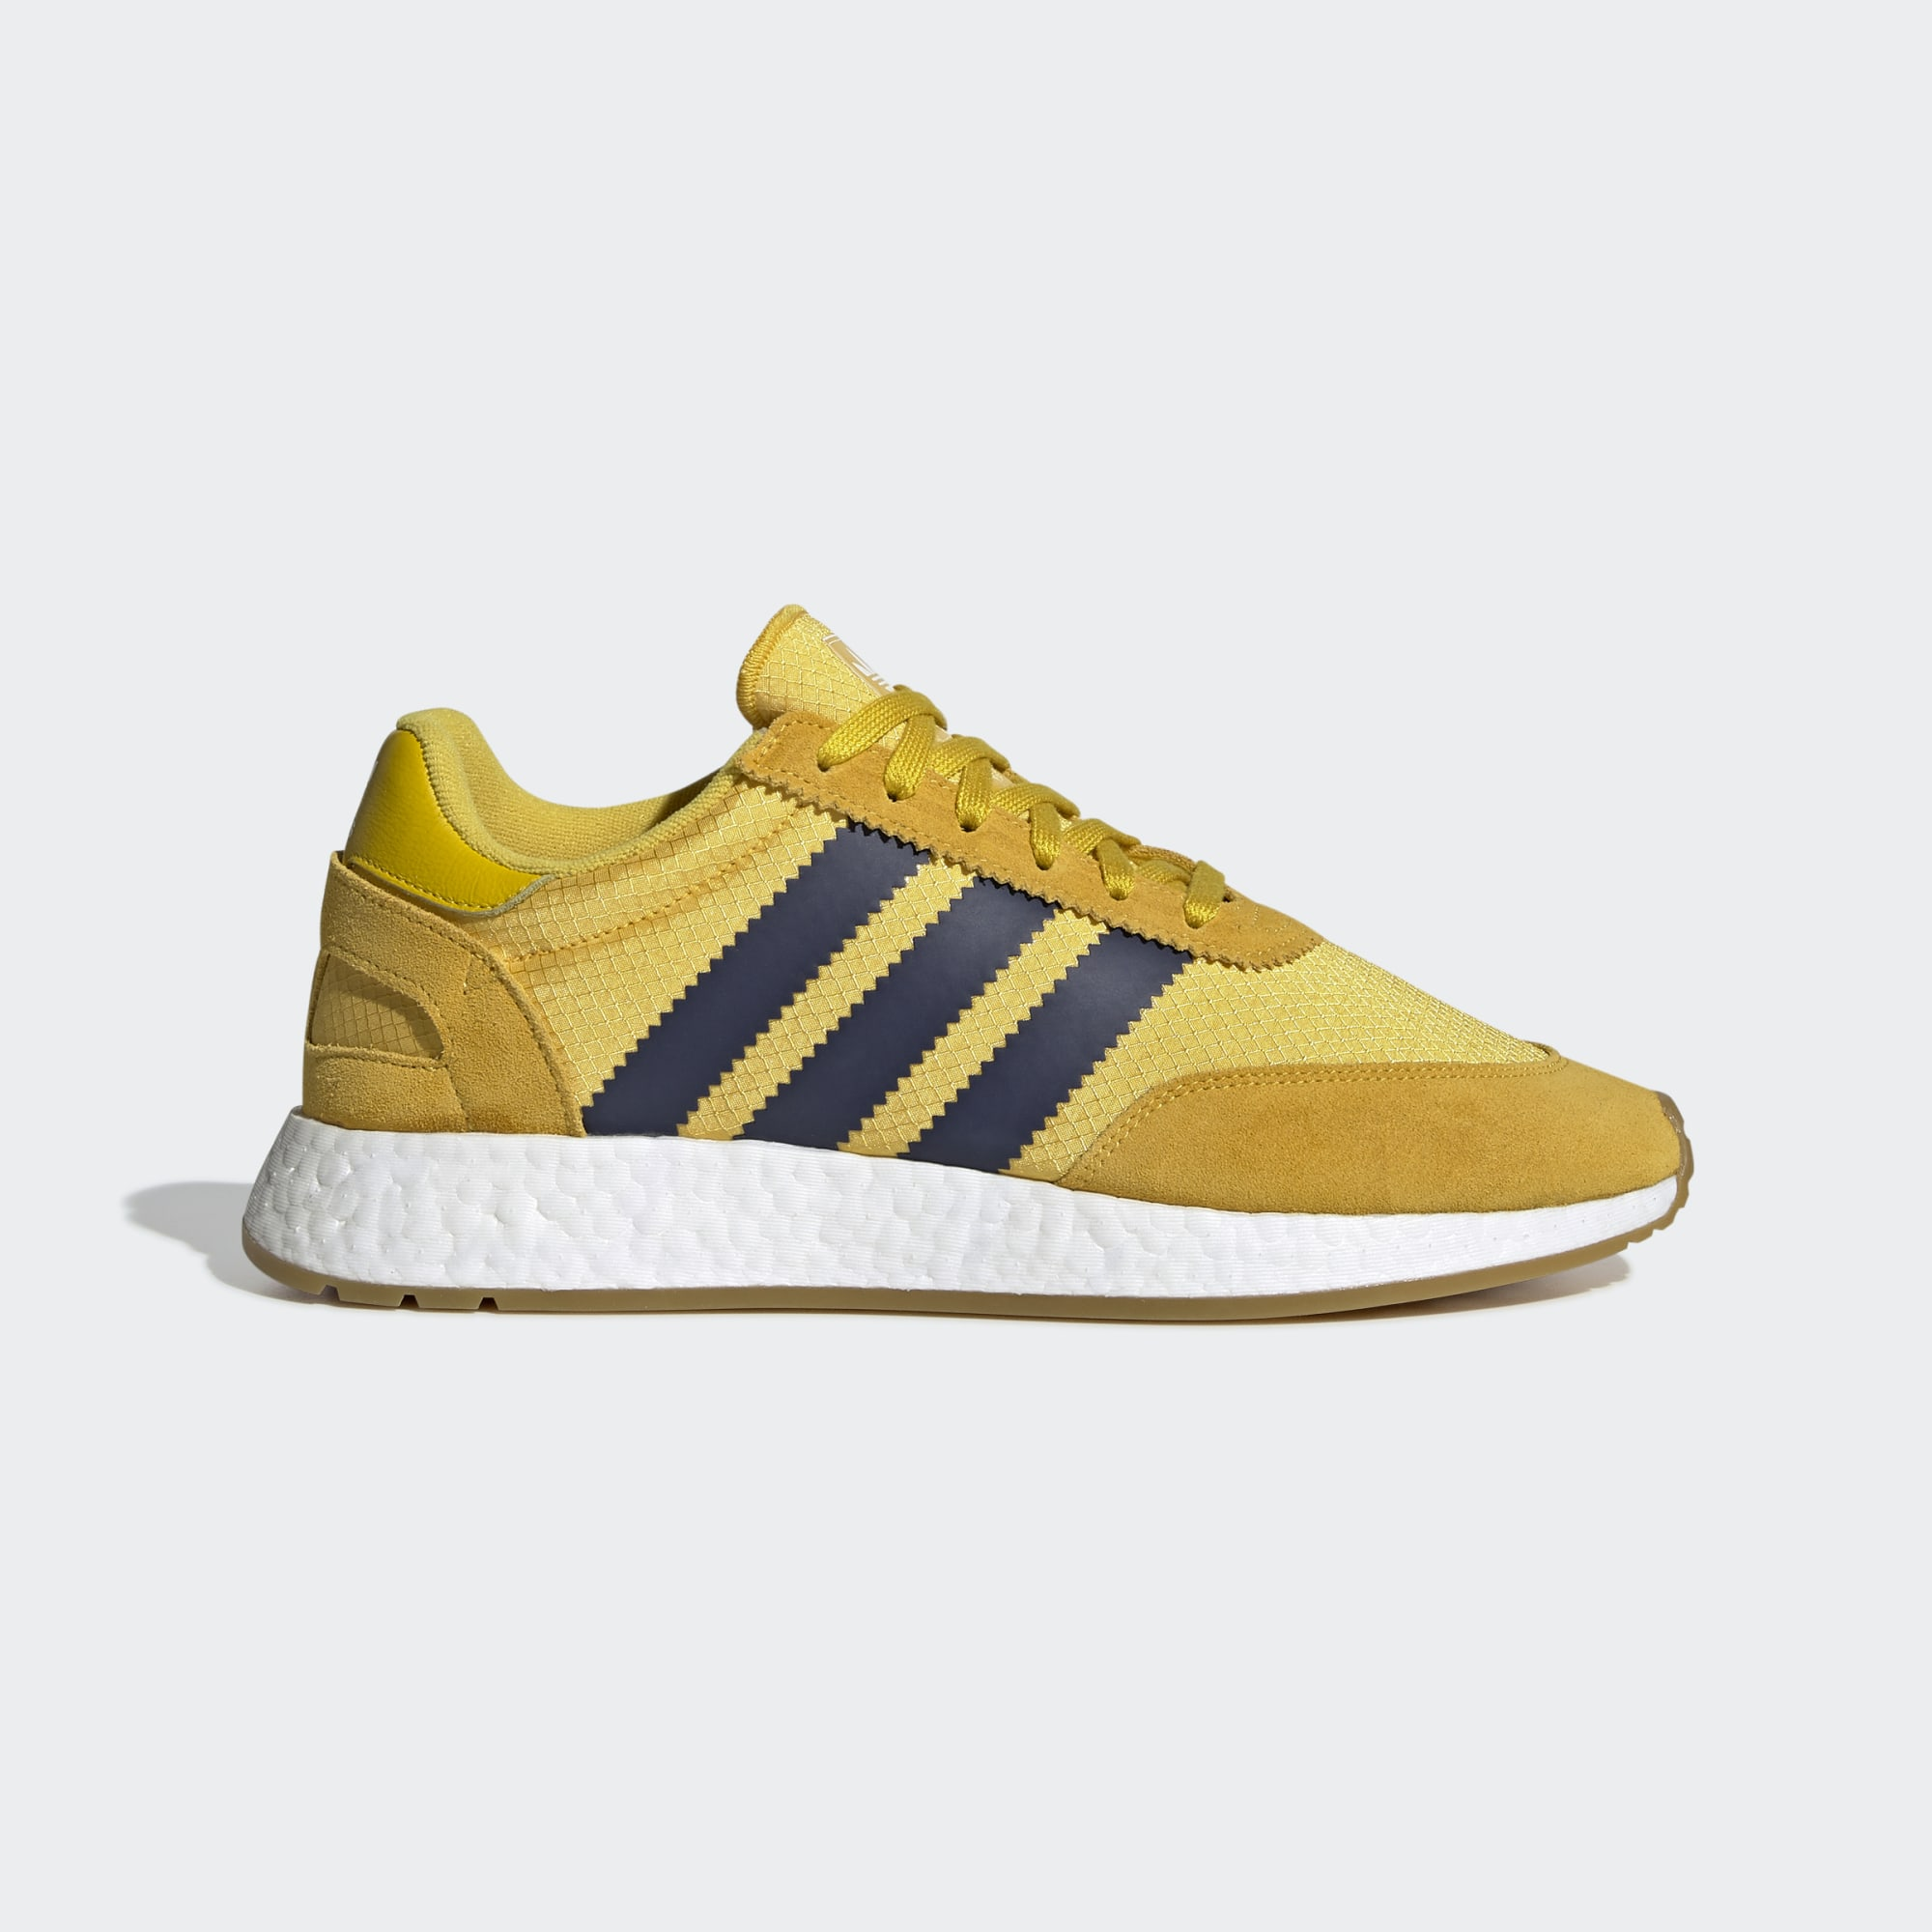 Adidas I-5923 Shoes - Tribe Yellow / Night Indigo / Gum